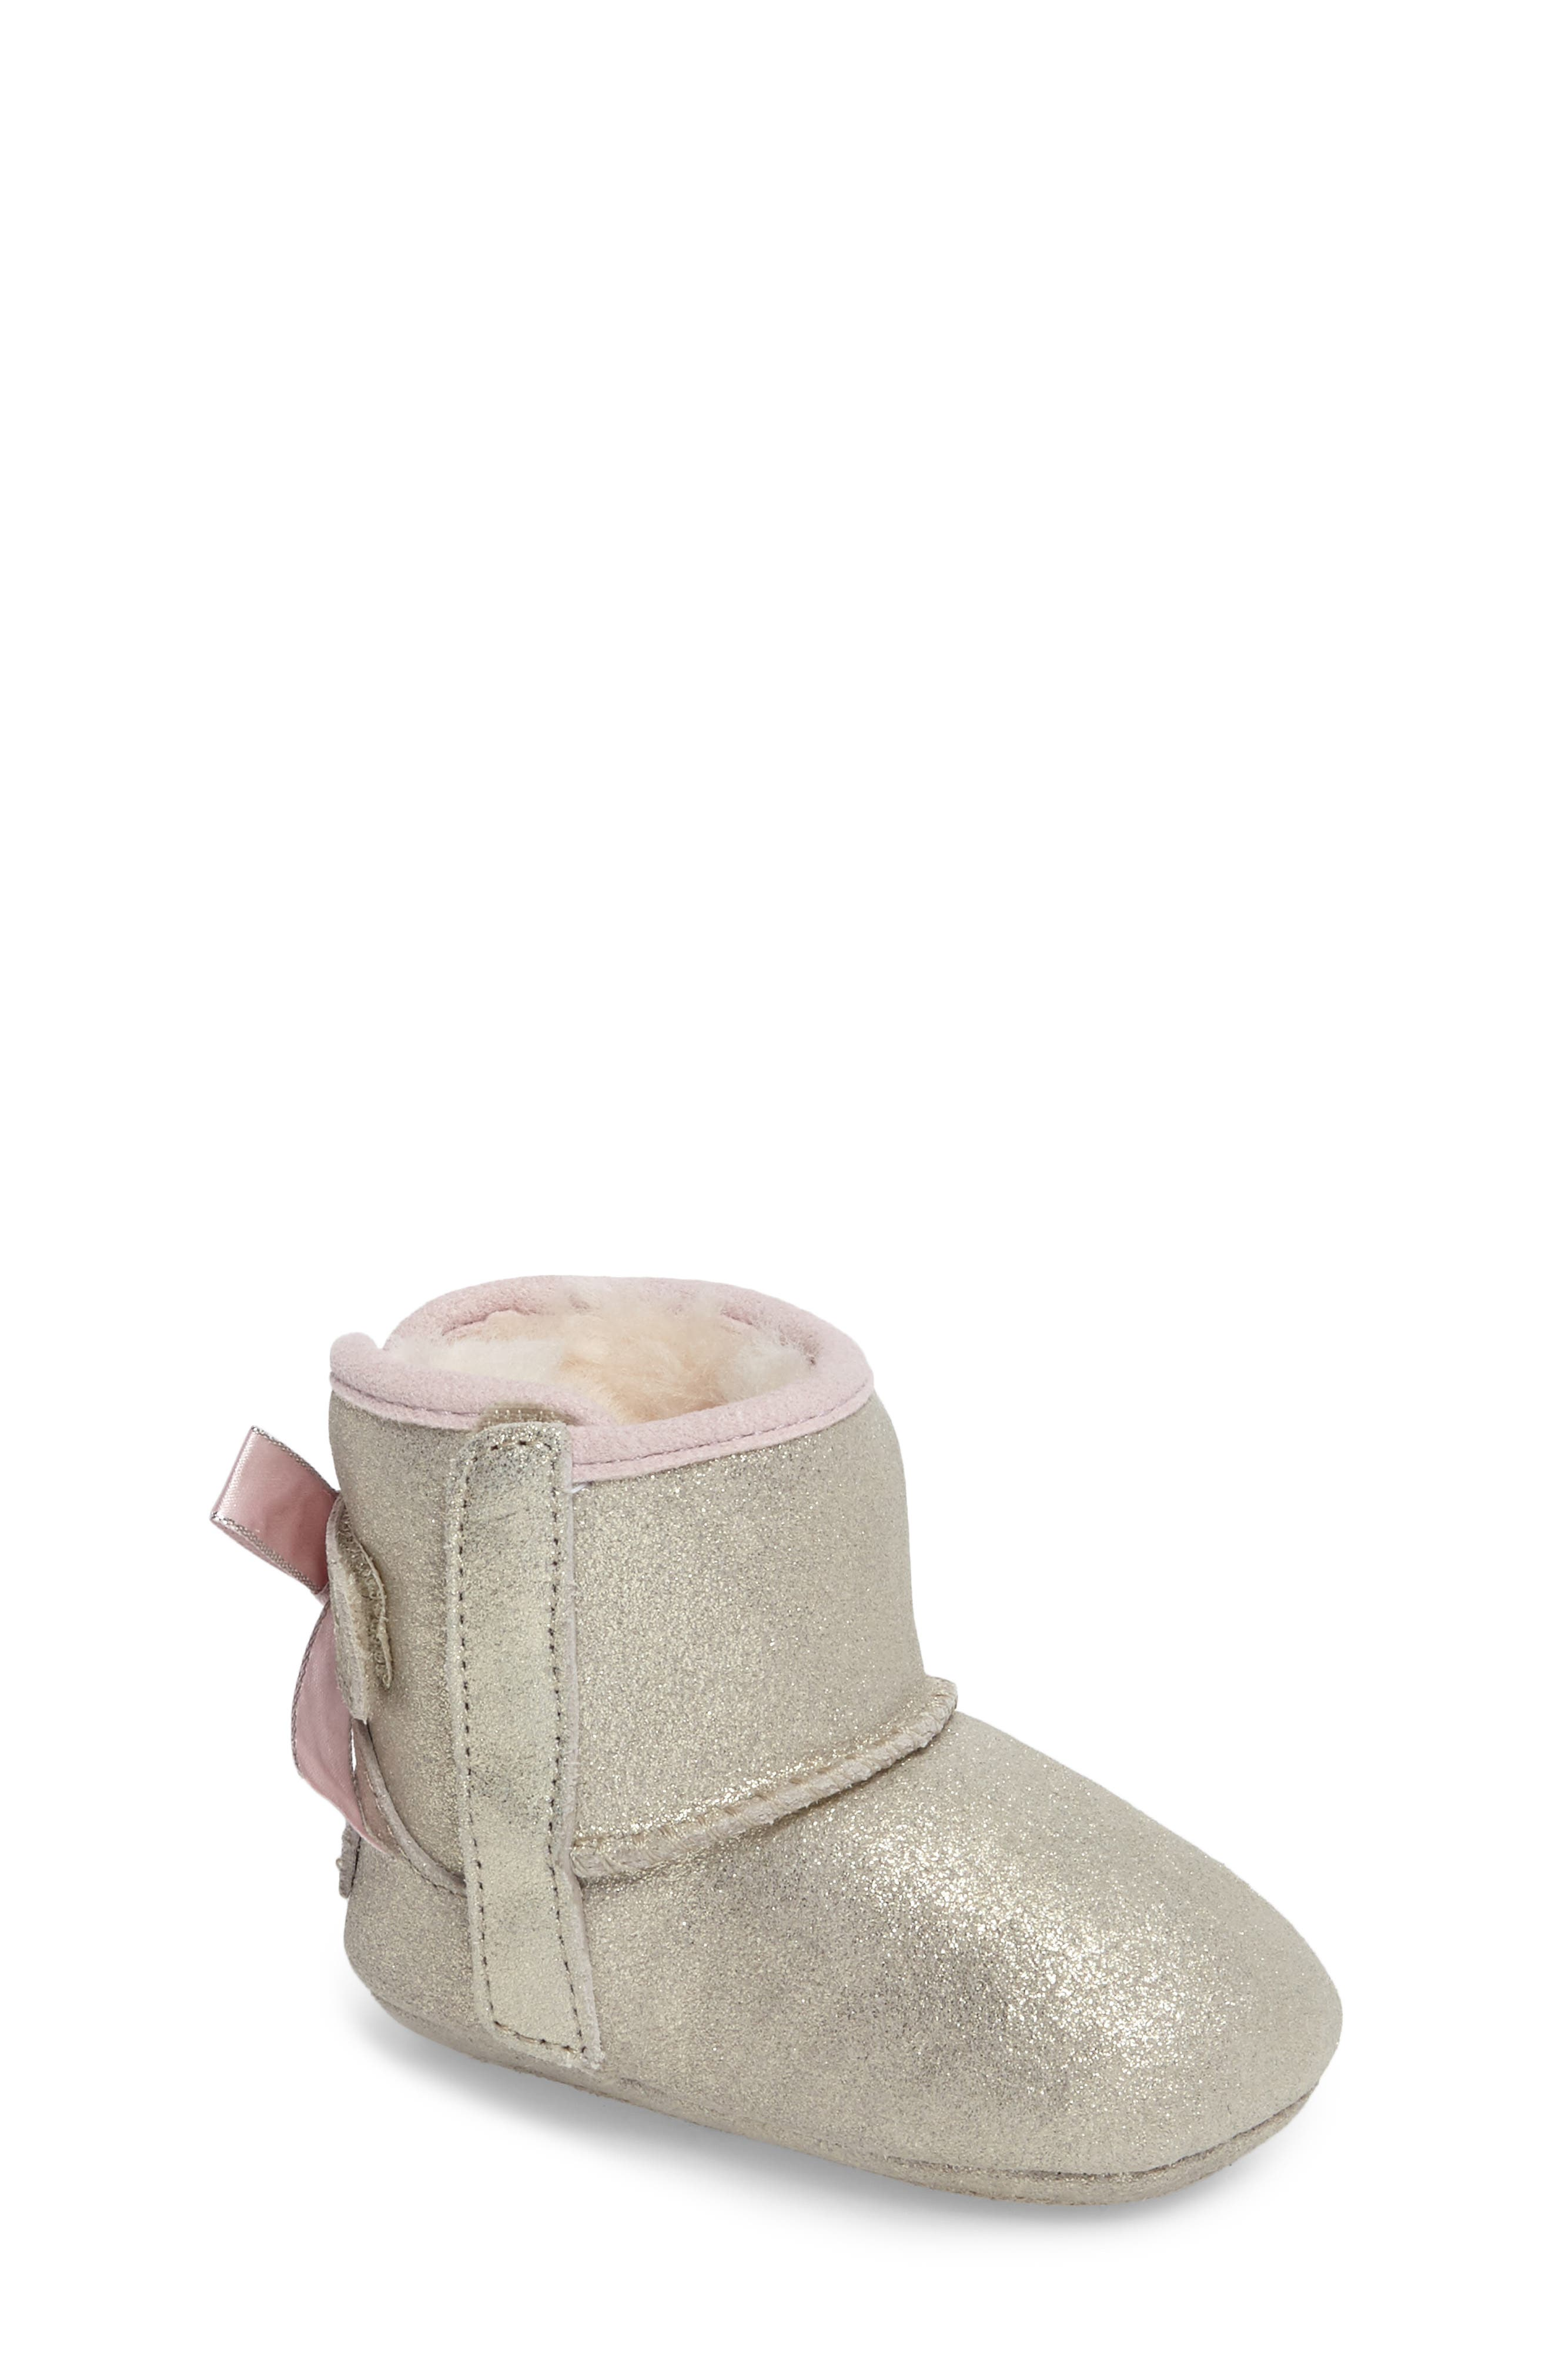 UGG<SUP>®</SUP>, Jesse Bow II Metallic Bootie, Main thumbnail 1, color, GOLD